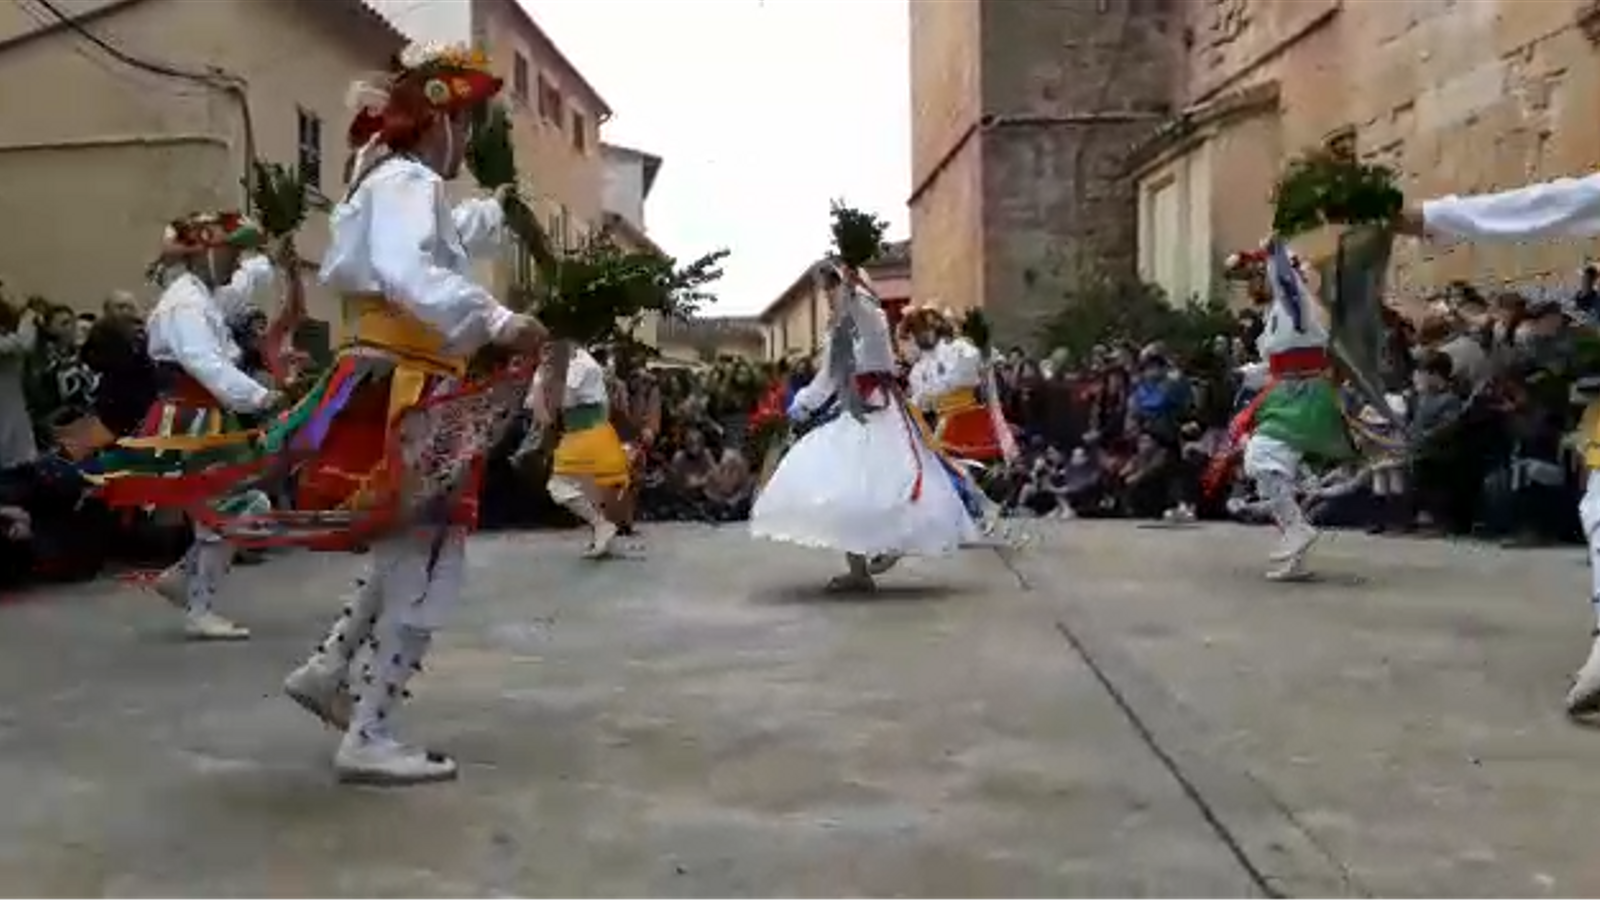 Cossiers d'Algaida, danses vives per Sant Honorat